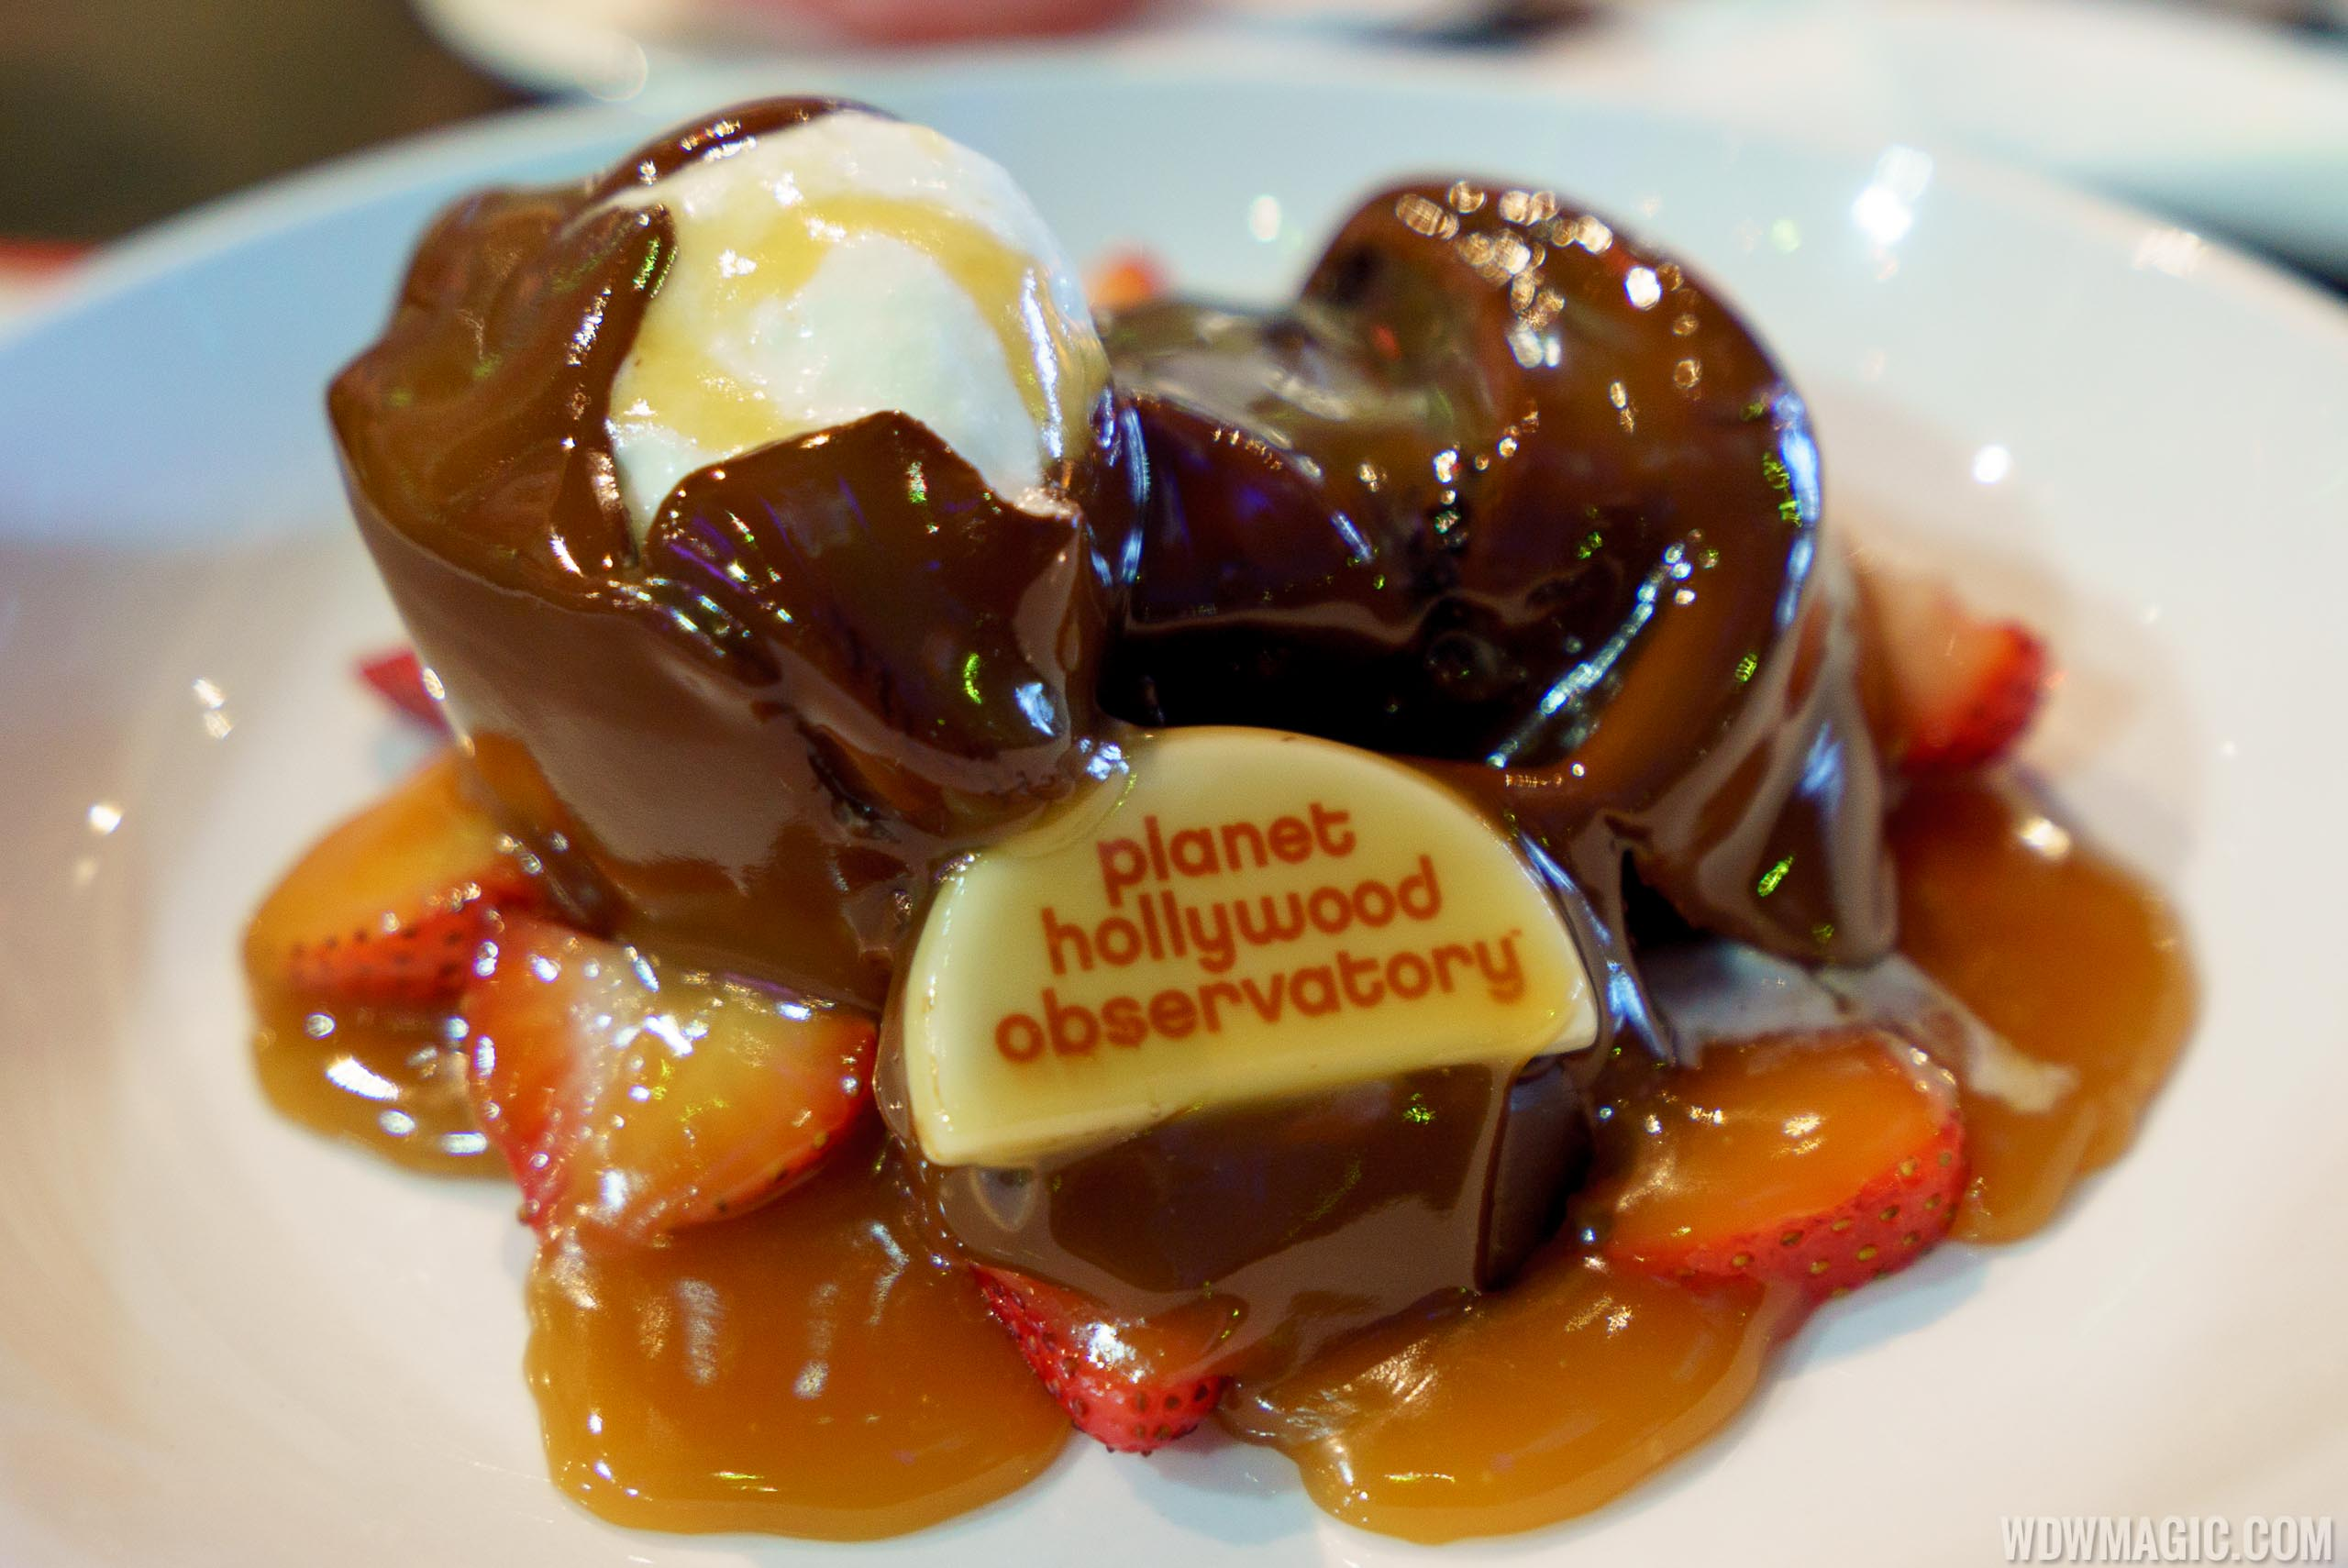 Planet Meltdown - $14.99 Chocolate sphere melted tableside by hot chocolate sauce to reveal double chocolate fudge cake, fresh strawberries and whipped cream